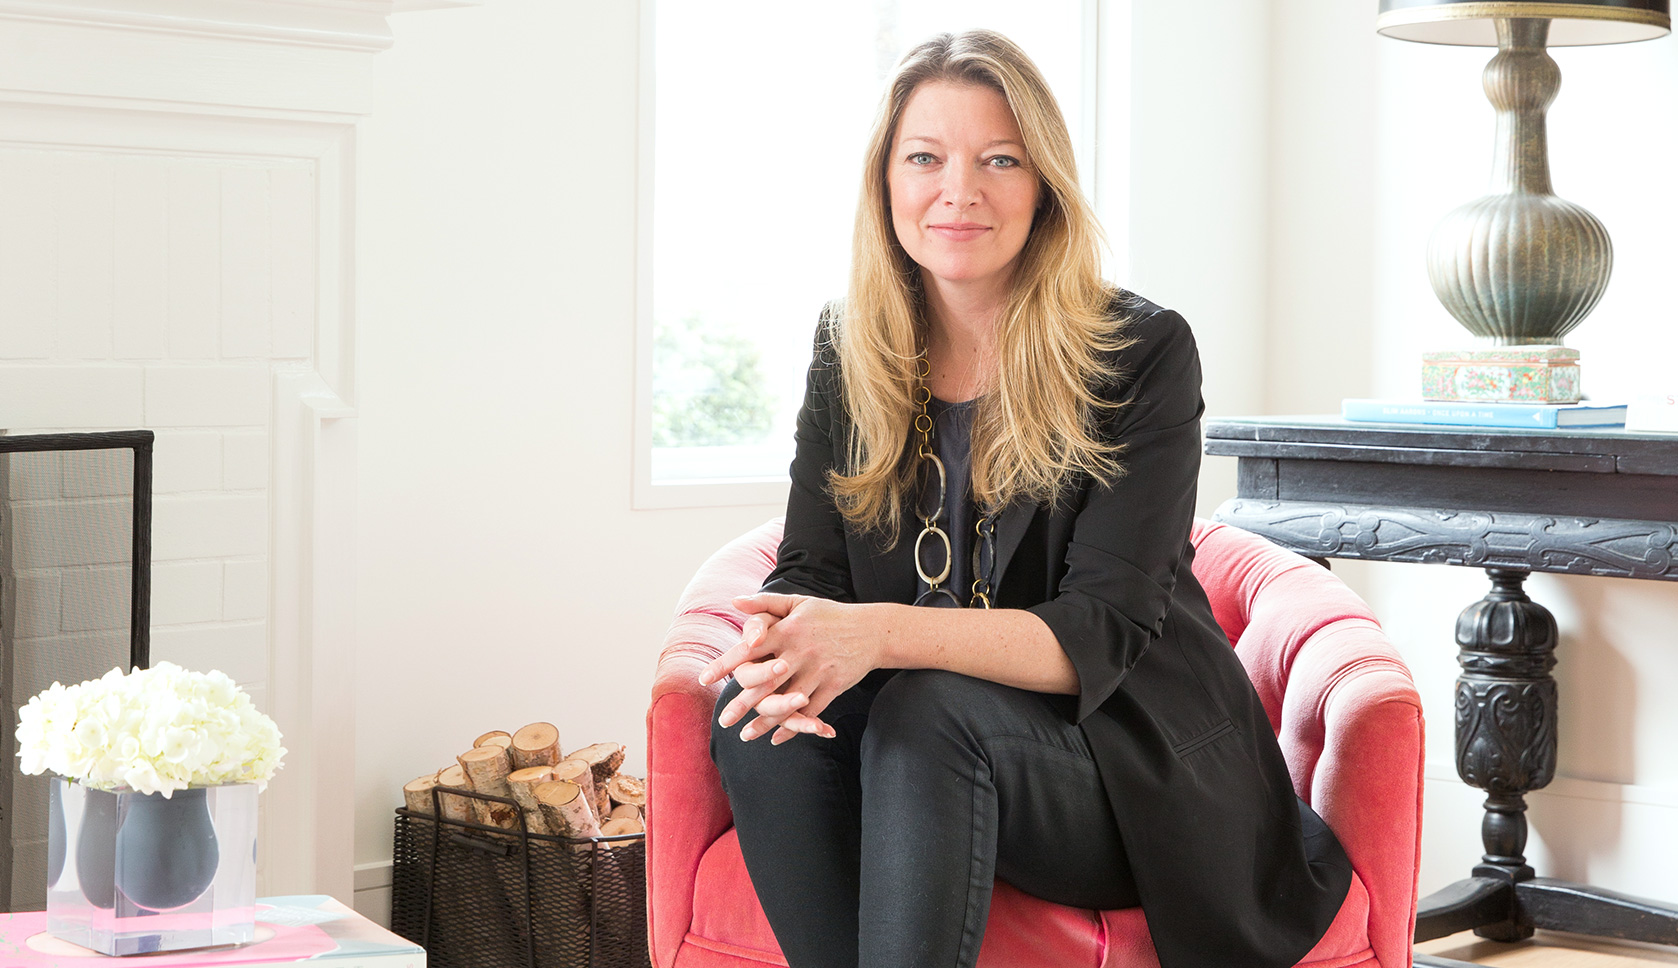 5 Minutes With Gretchen Hansen Ceo And Founder Of